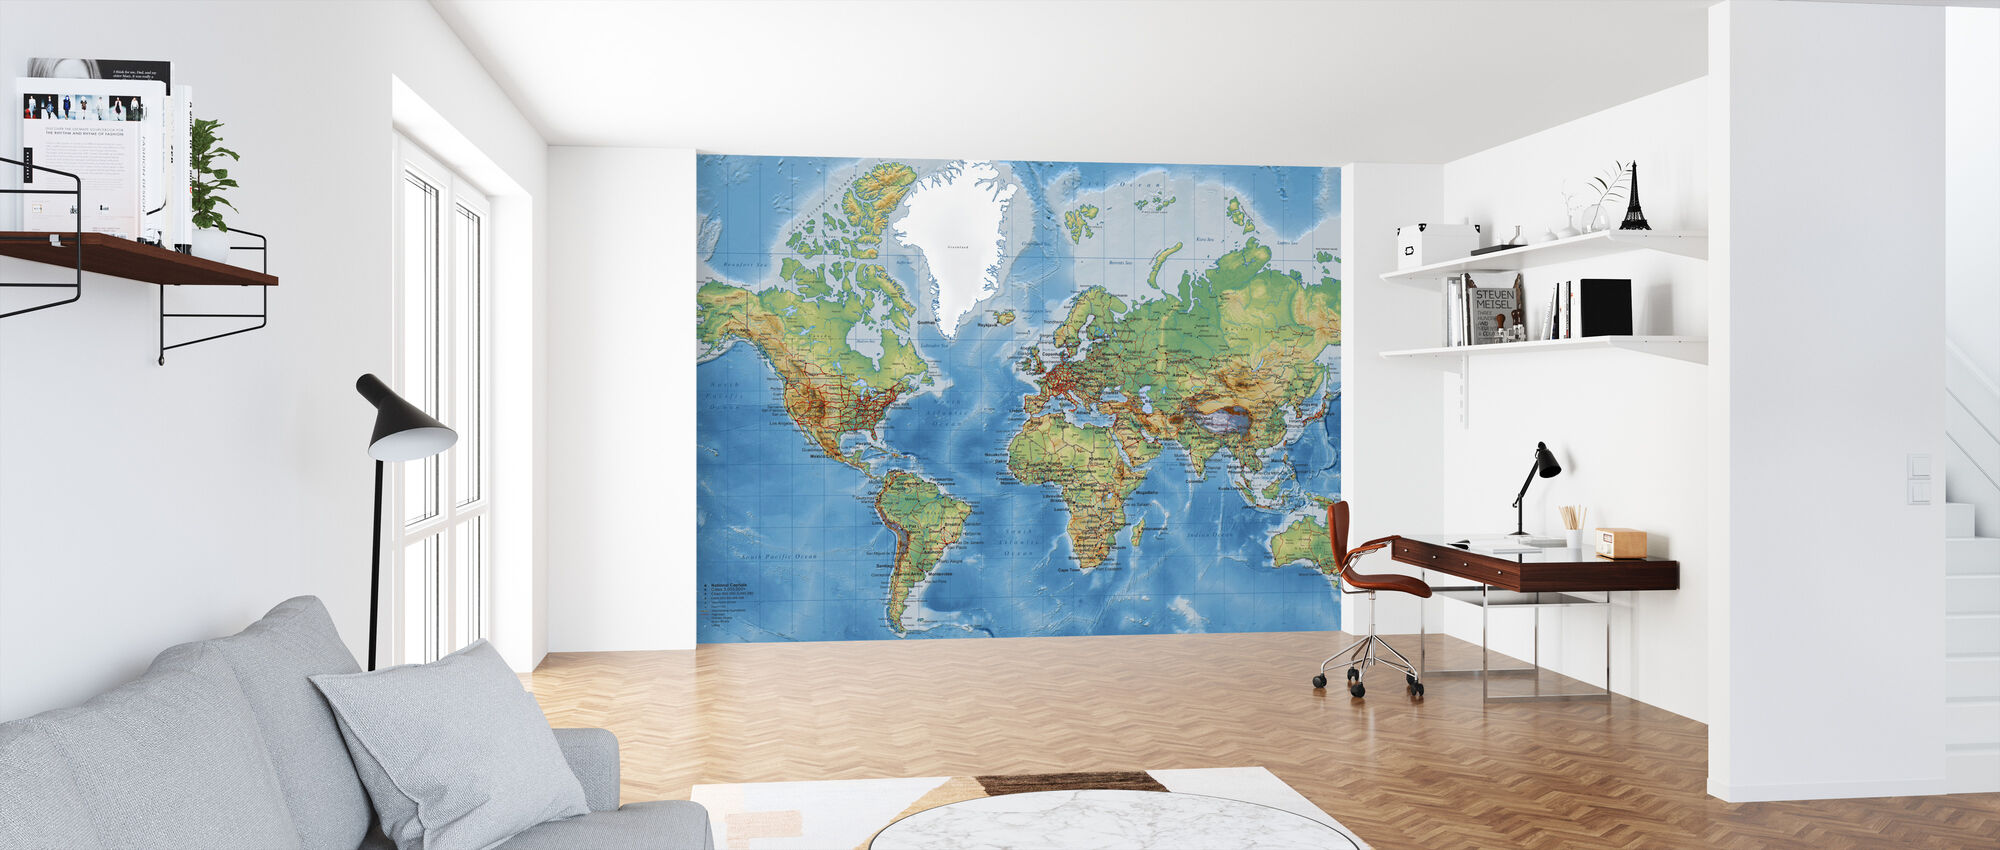 World Map - With Roads - Wallpaper - Office